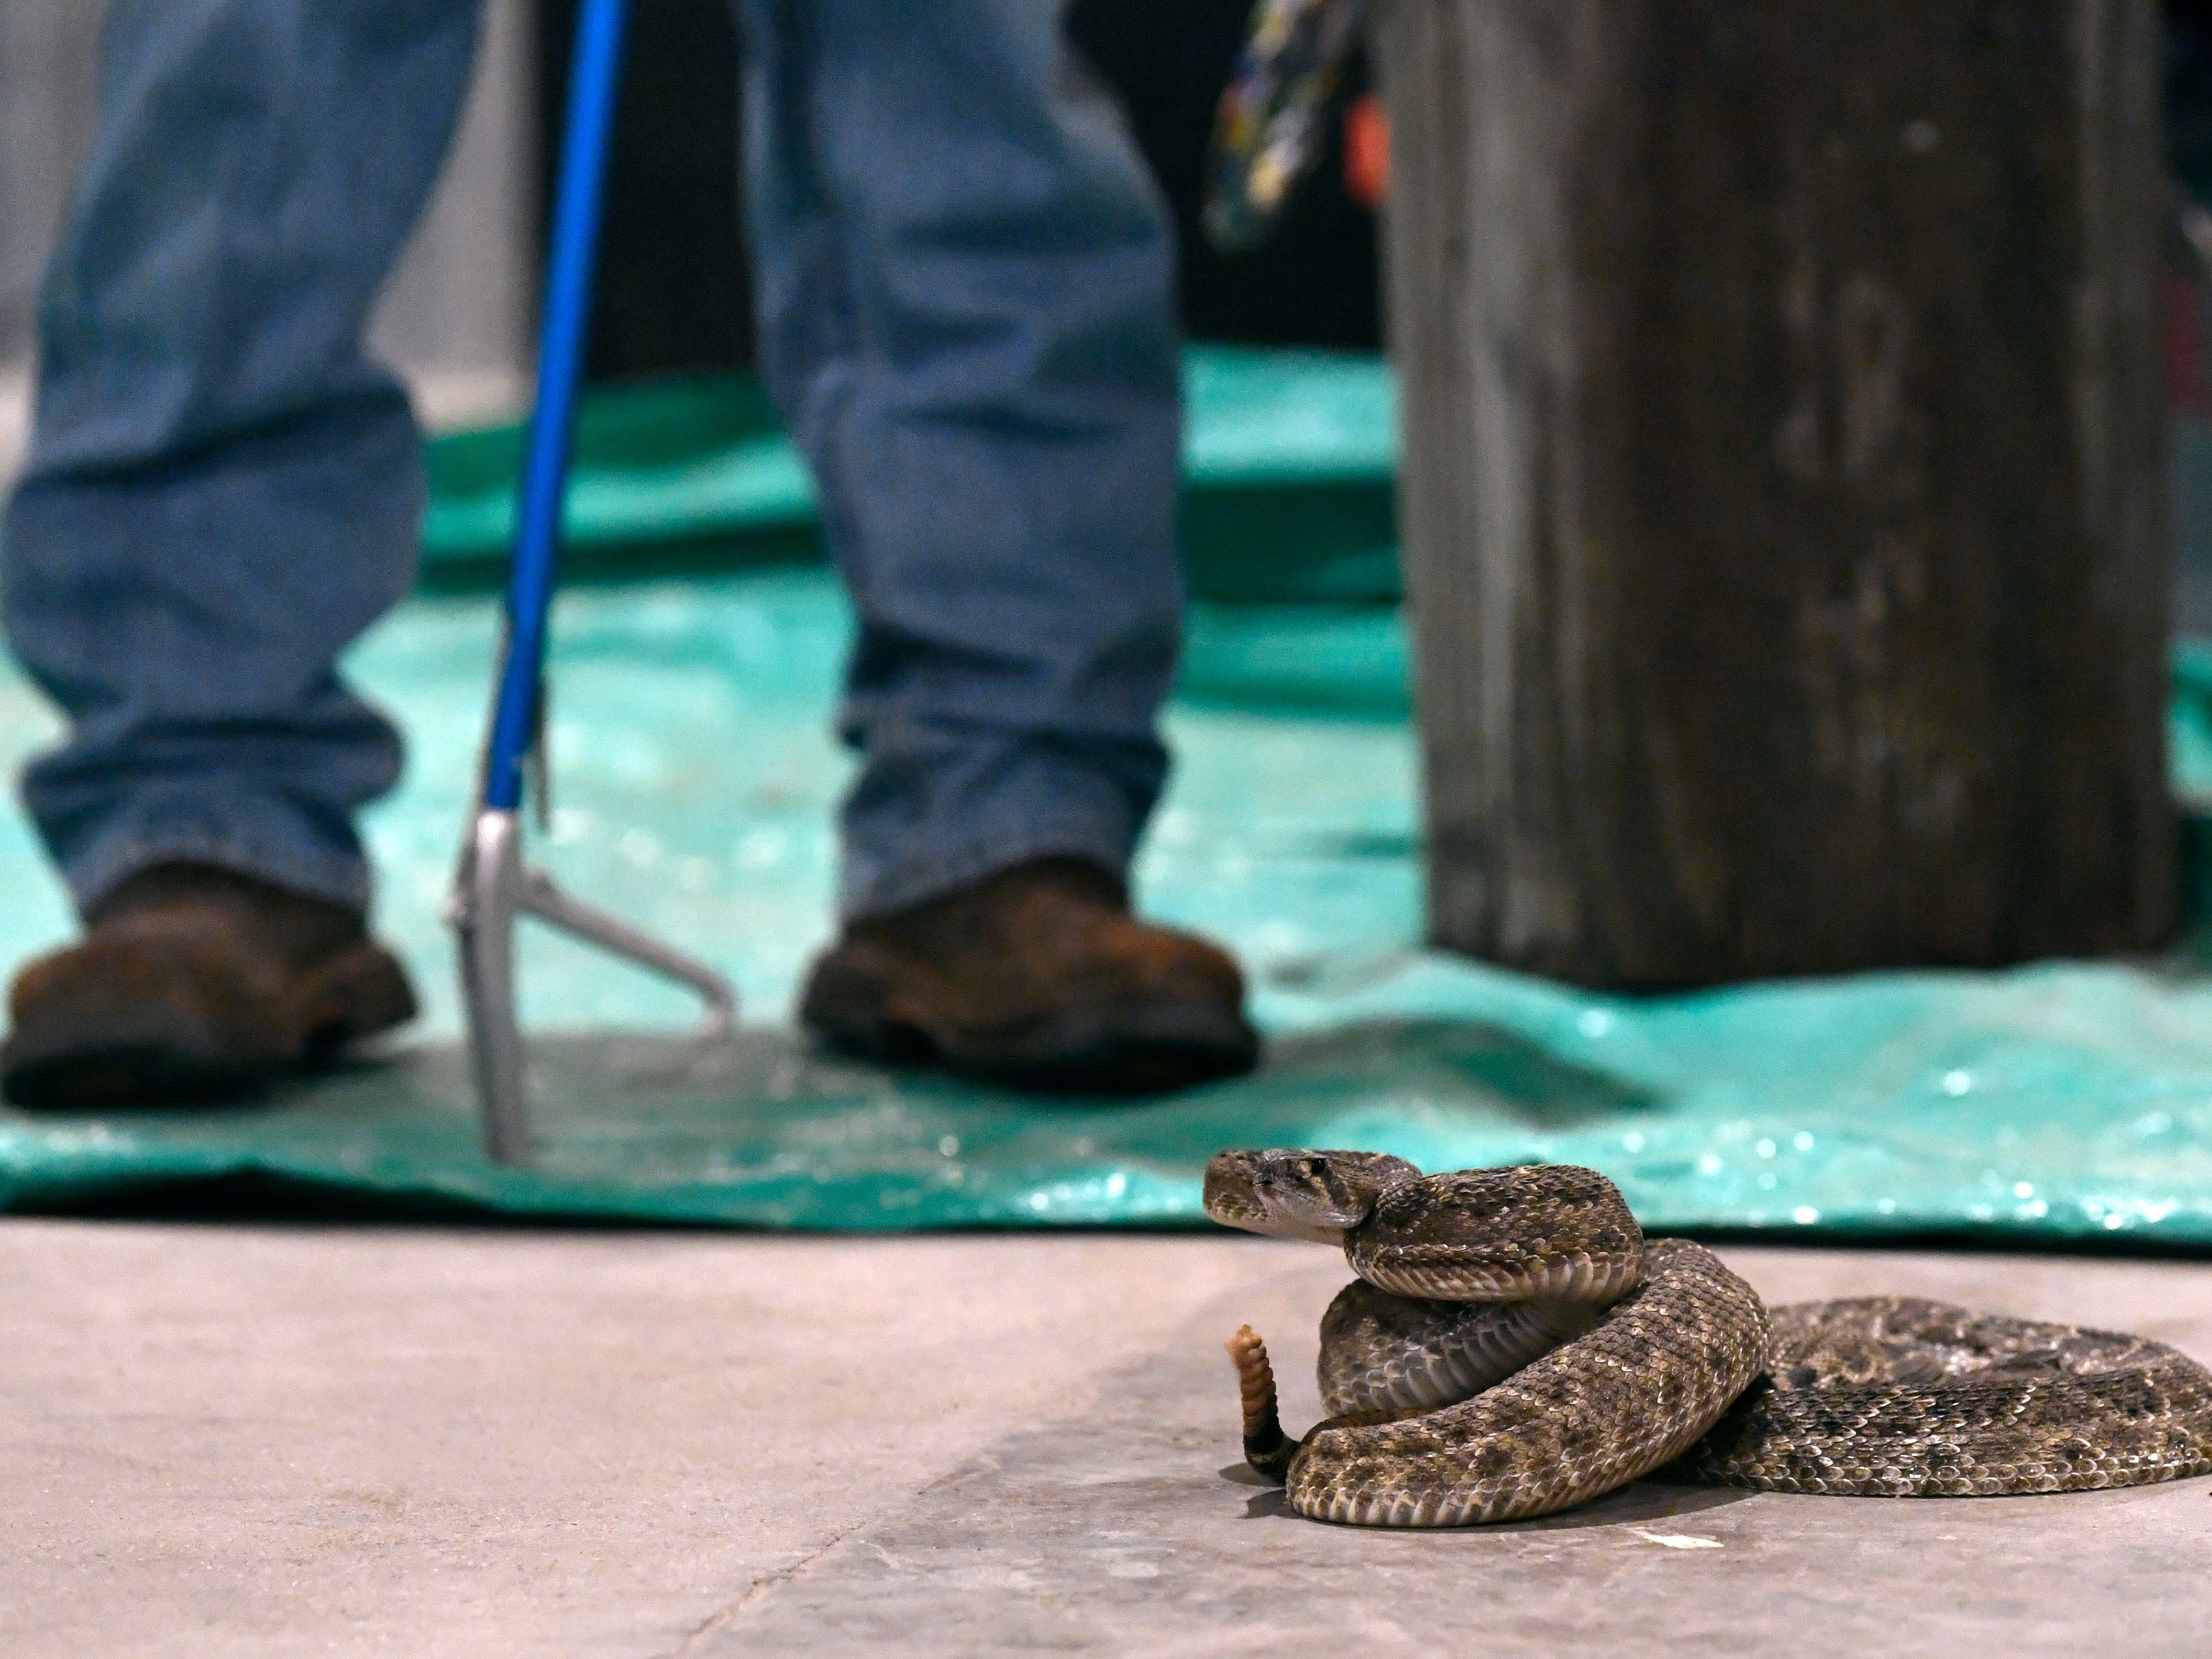 A western diamondback rattlesnake is curled on the floor of the Sweetwater Jaycee's Barn during Media Day Friday Feb. 22, 2019. Media Day introduces the Big Country to this year's Miss Snake Charmer contestants. The pageant will be March 7, followed by the World's Largest Rattlesnake Roundup March 8-10.